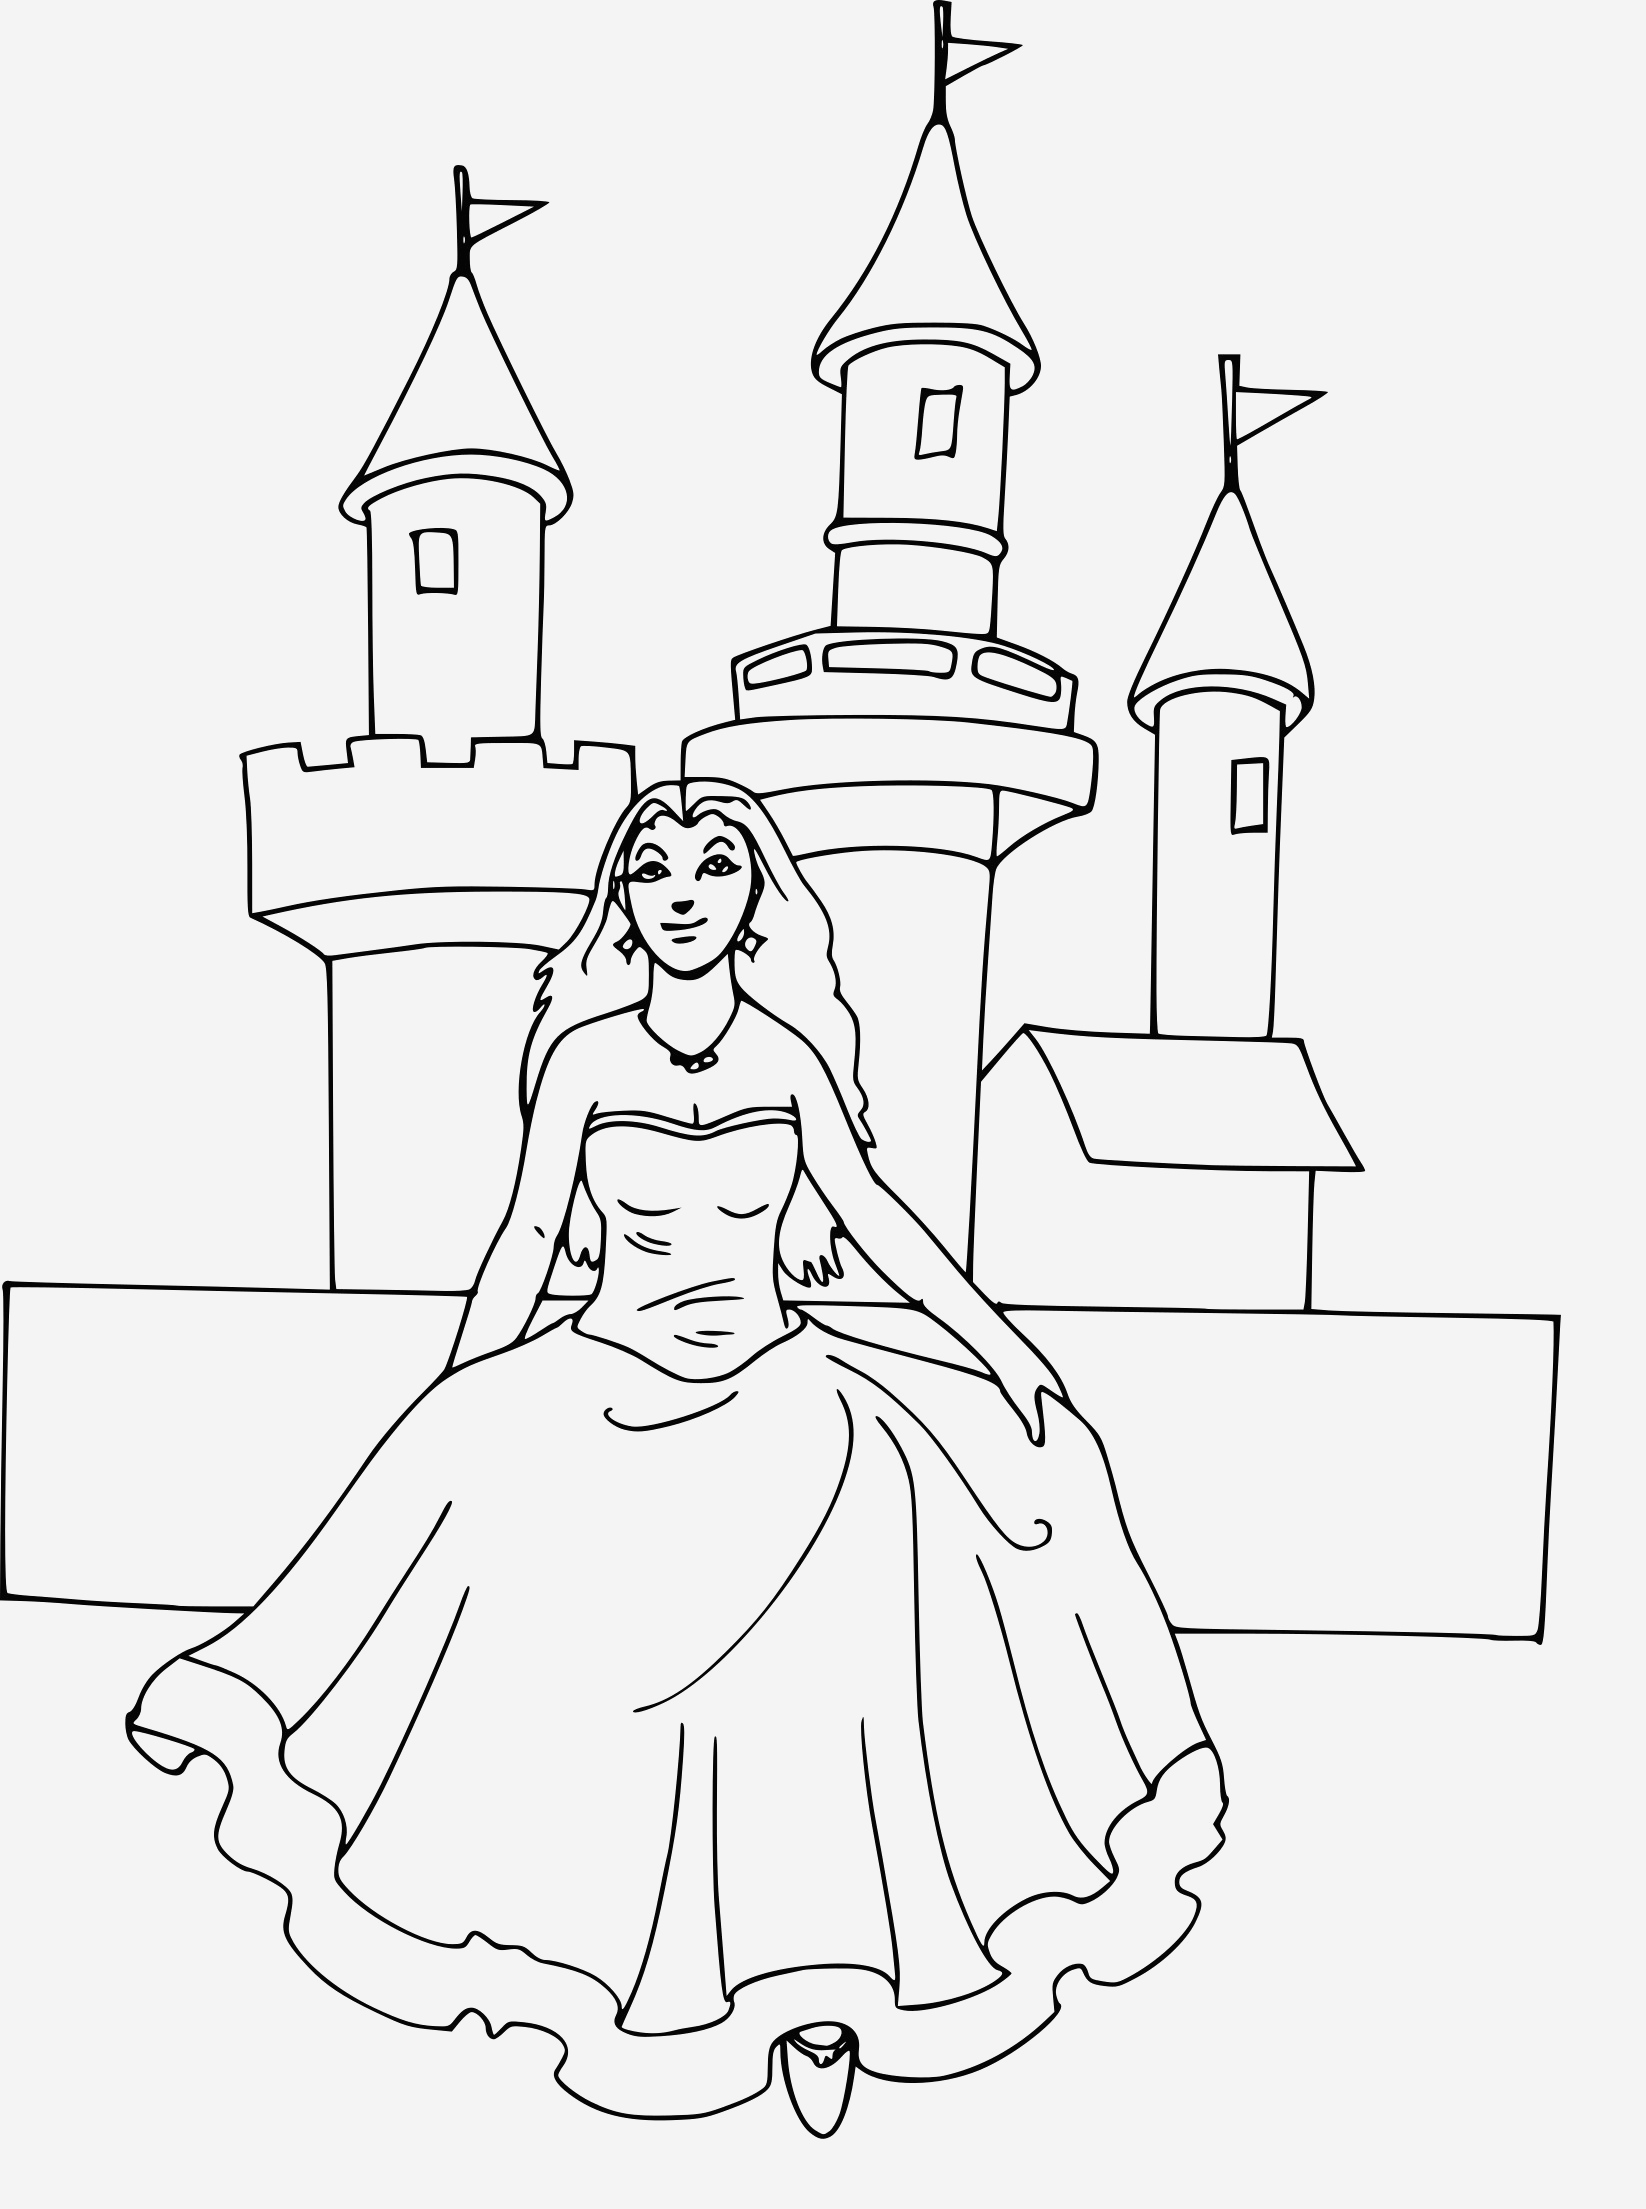 Coloriage Chateau Princesse Beautiful Coloriage Chateau Princesse   Imprimer Sur Coloriages Fo Of Coloriage Chateau Princesse